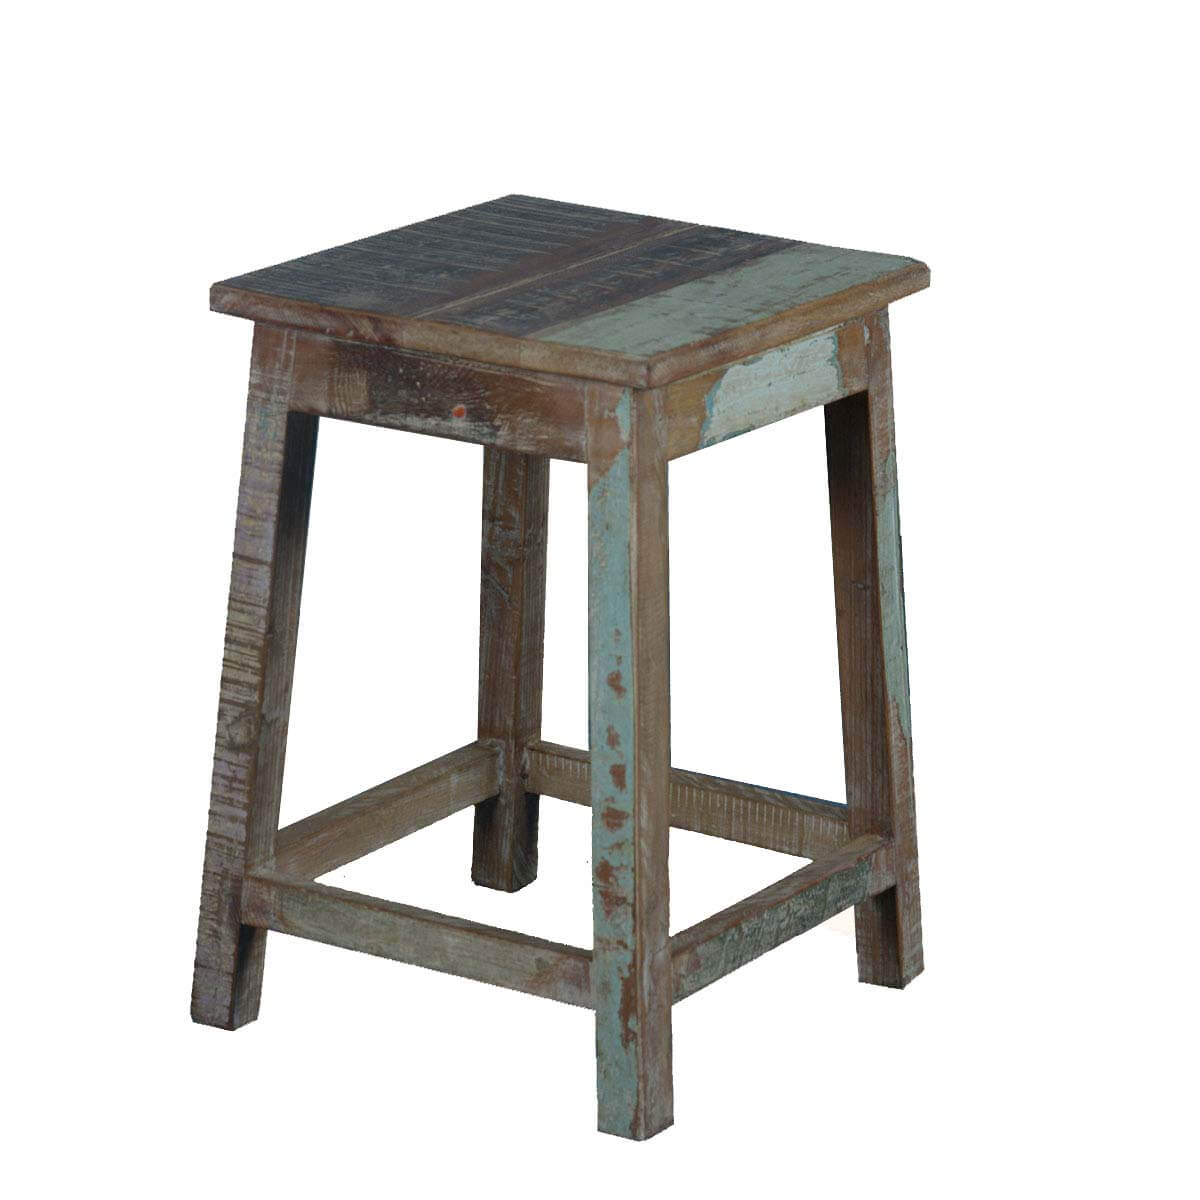 Square Rustic Reclaimed Wood 18 Pedestal End Table Stool